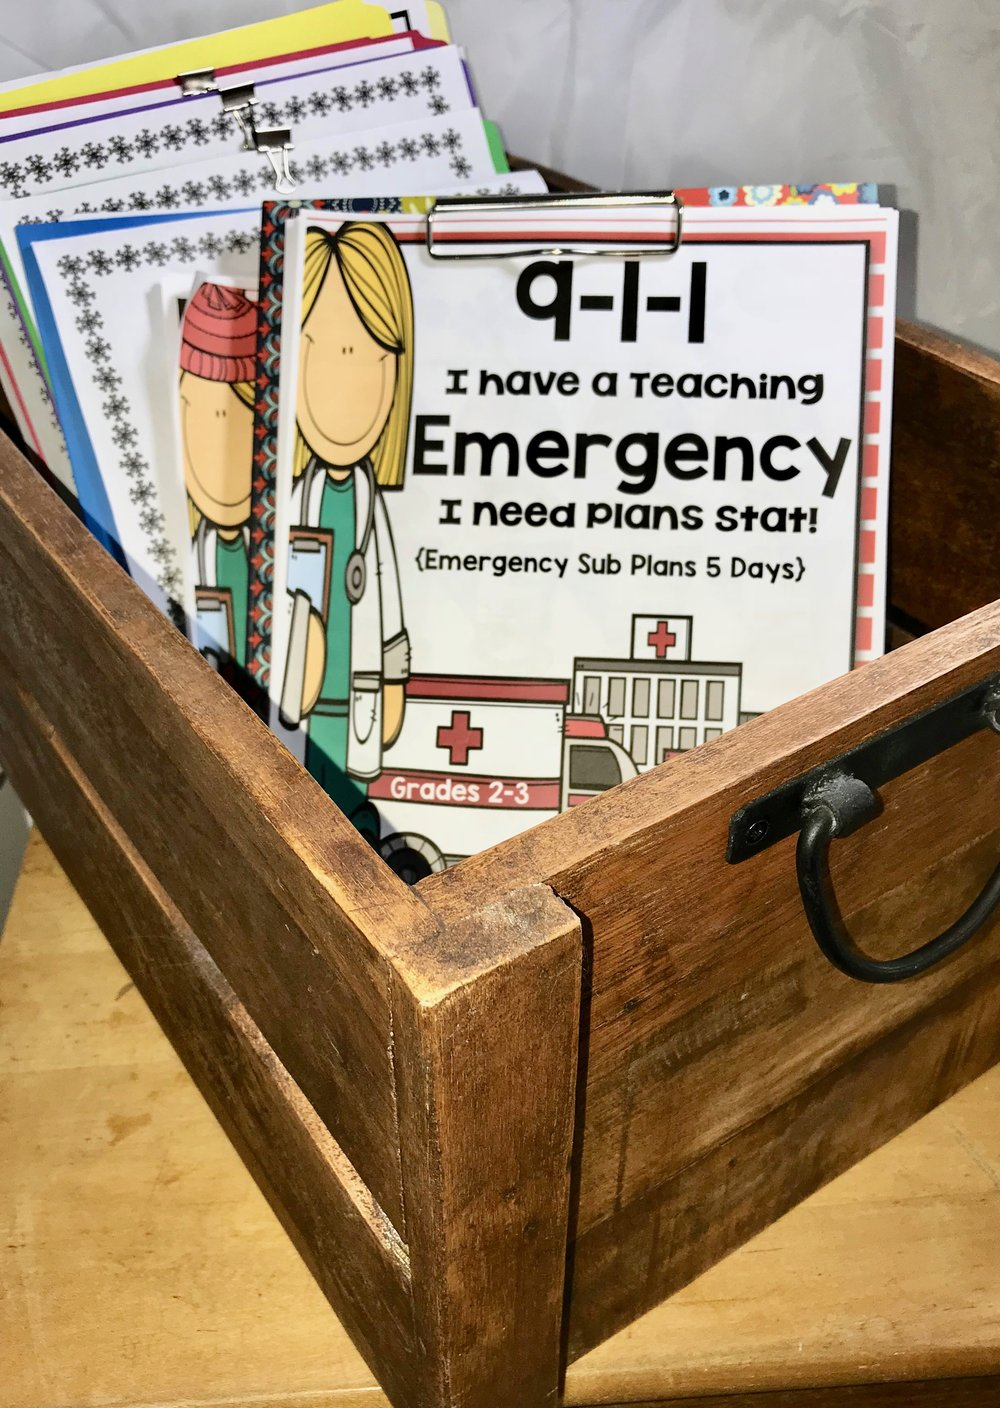 Emergency sub plans for 2nd and 3rd grade give teachers peace of mind. Prepared plans give substitute teachers ideas in your classroom. #emergencysubplans #substituteteacherideas #2ndgrade #3rdgrade